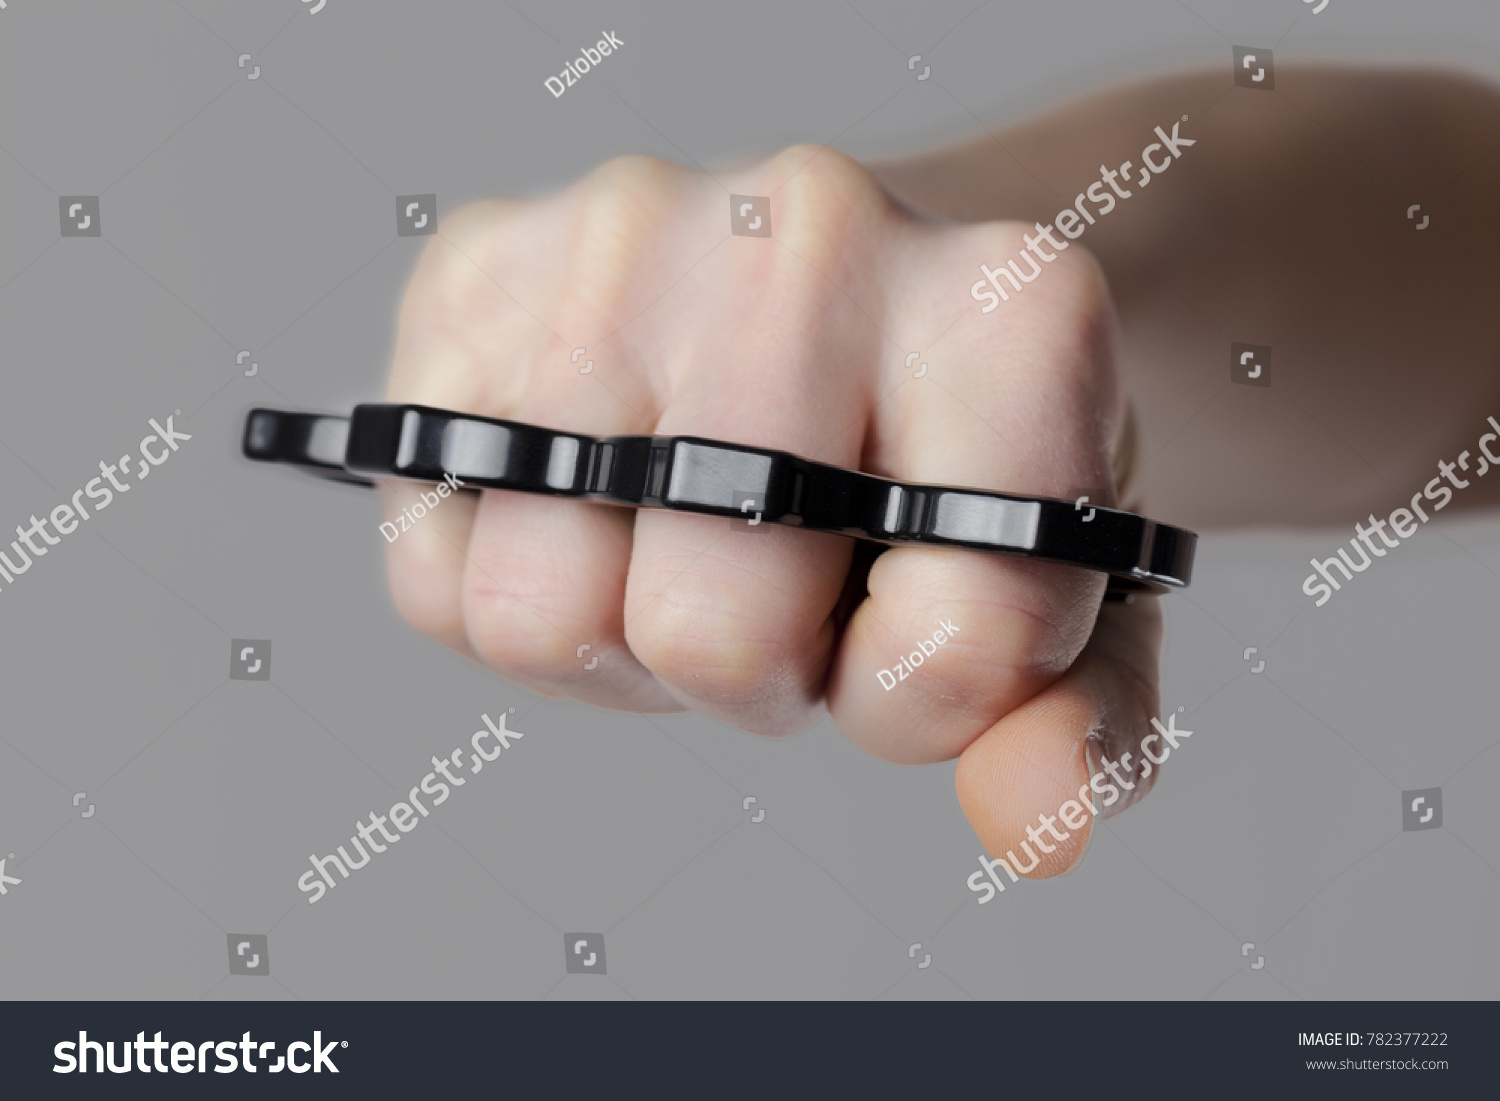 How to wear safely brass knuckles